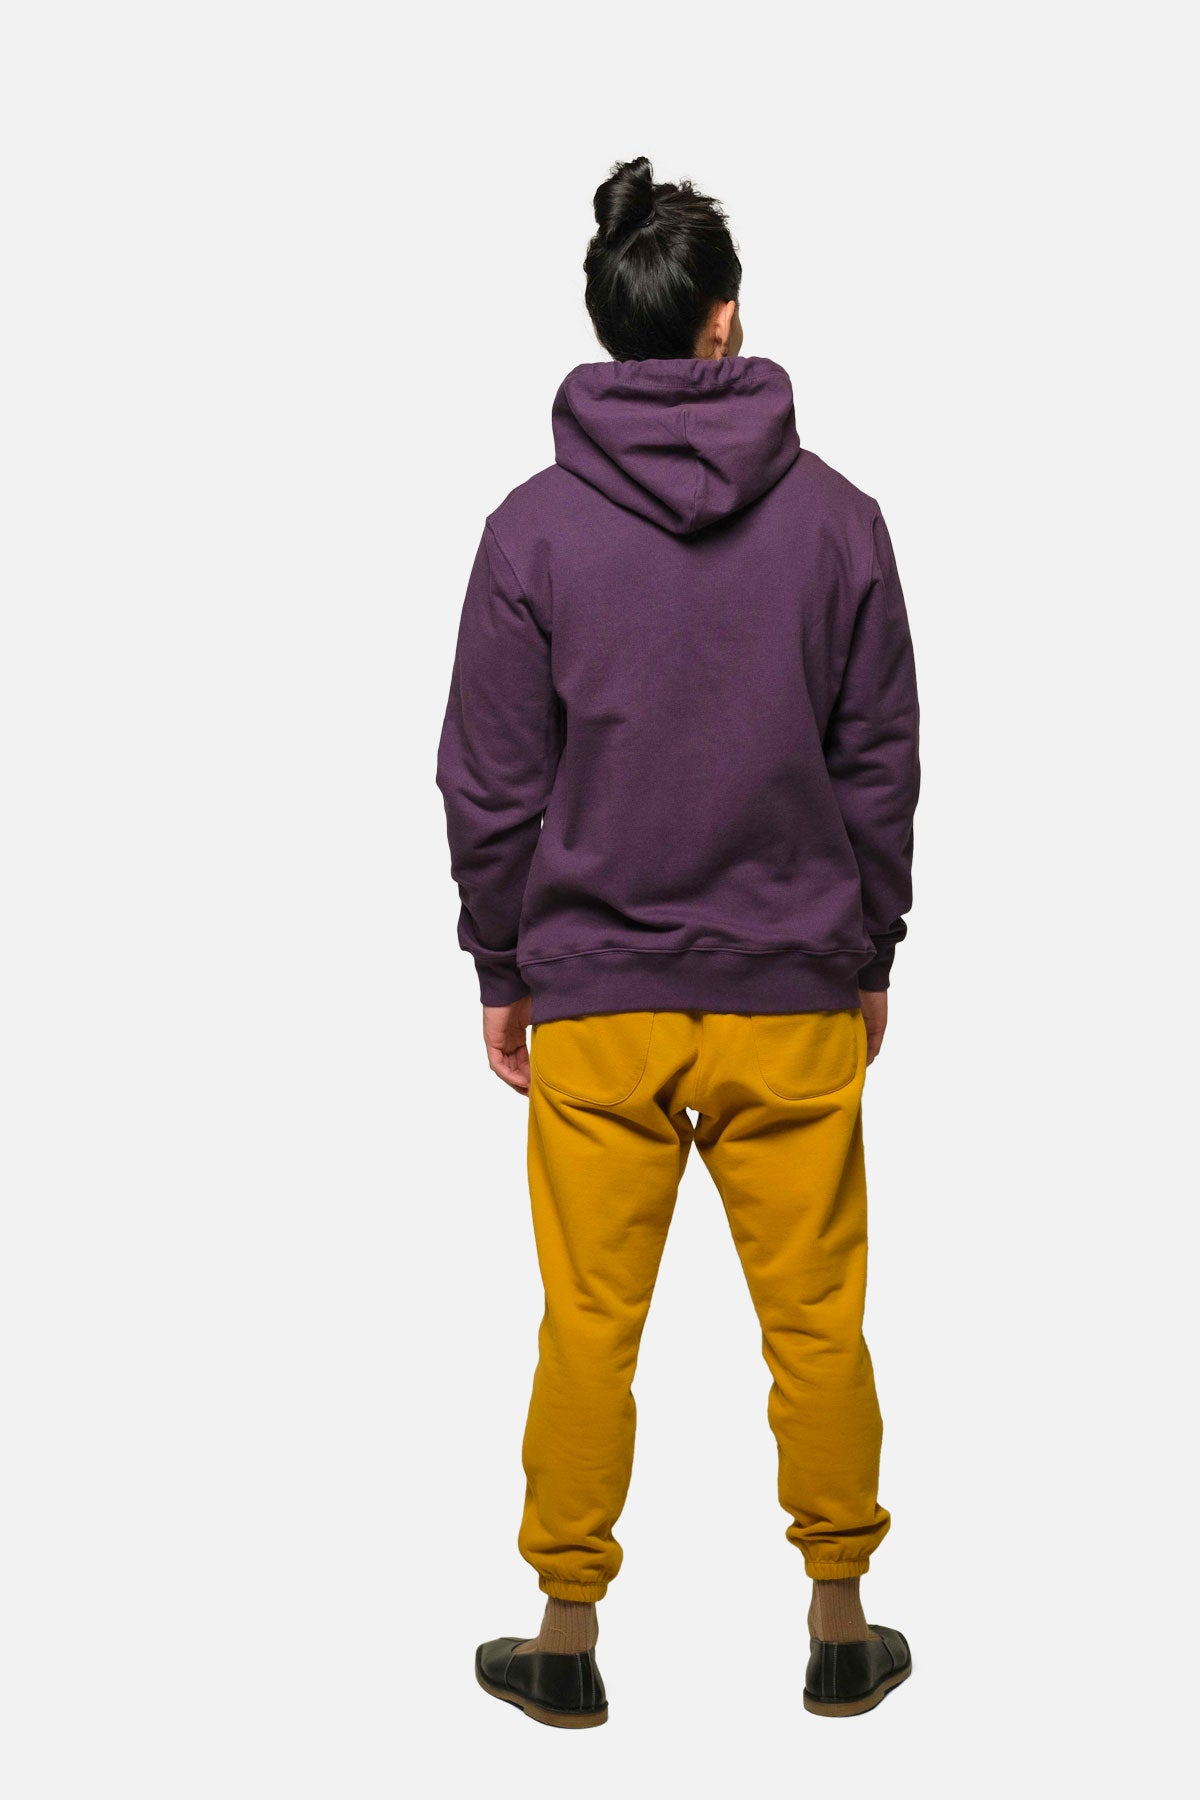 MORTON AVE HOODIE IN PURPLE - Fortune Goods